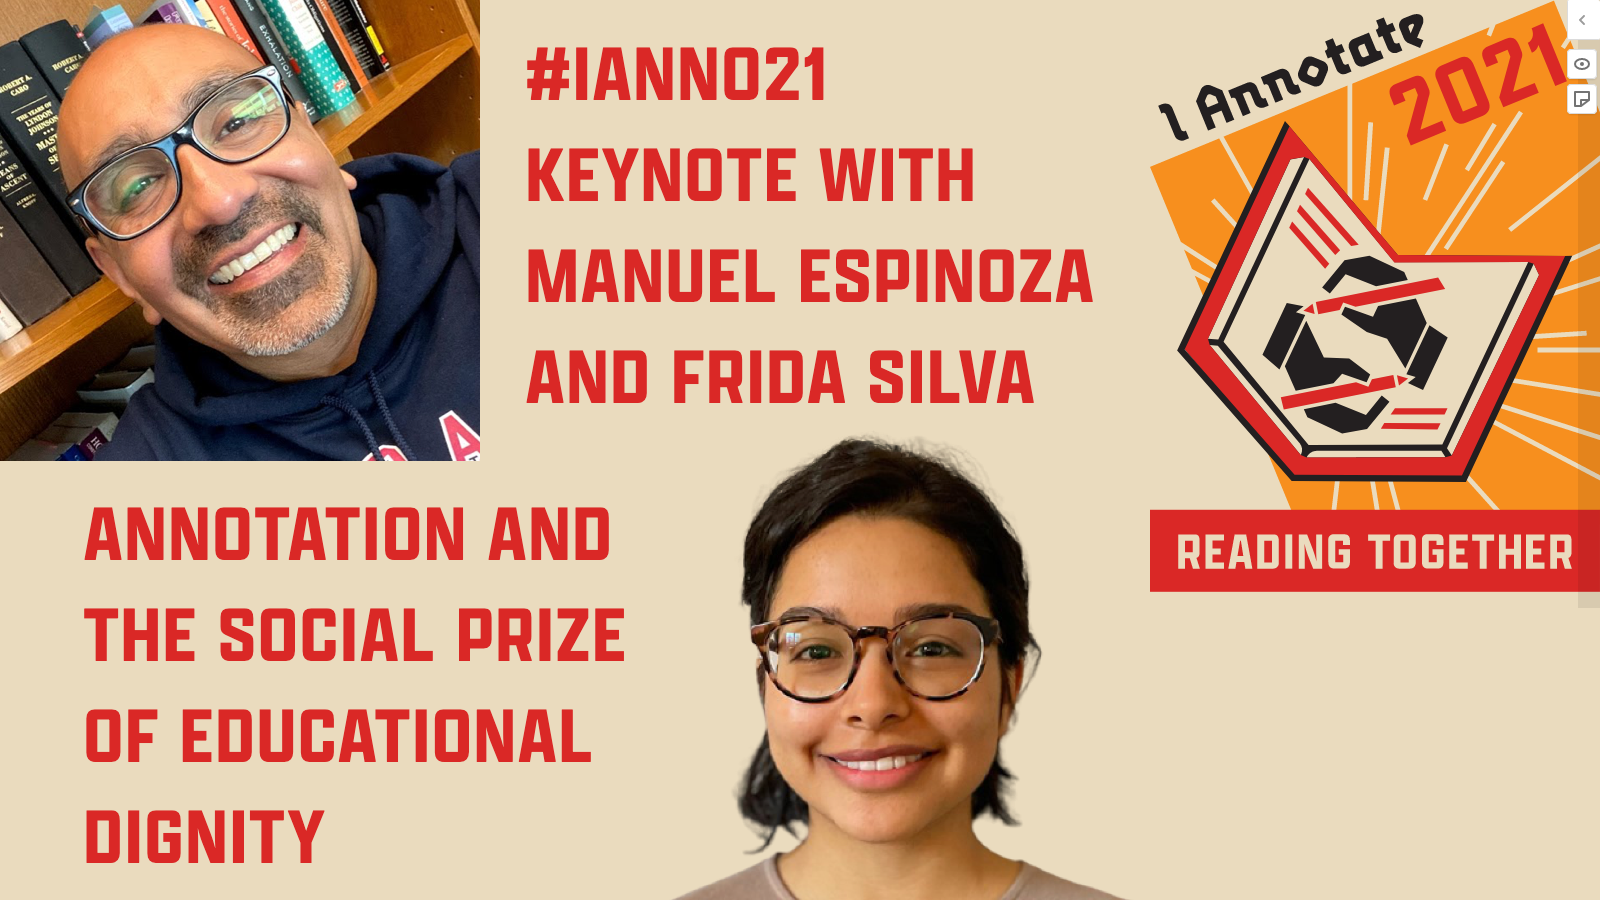 """Thumbnail from Manuel Espinoza and Frida Silva's #ianno21 Keynote video, showing their headshots, the event logo, and the title of their session: """"Annotation and the Social Prize of Educational Dignity"""""""